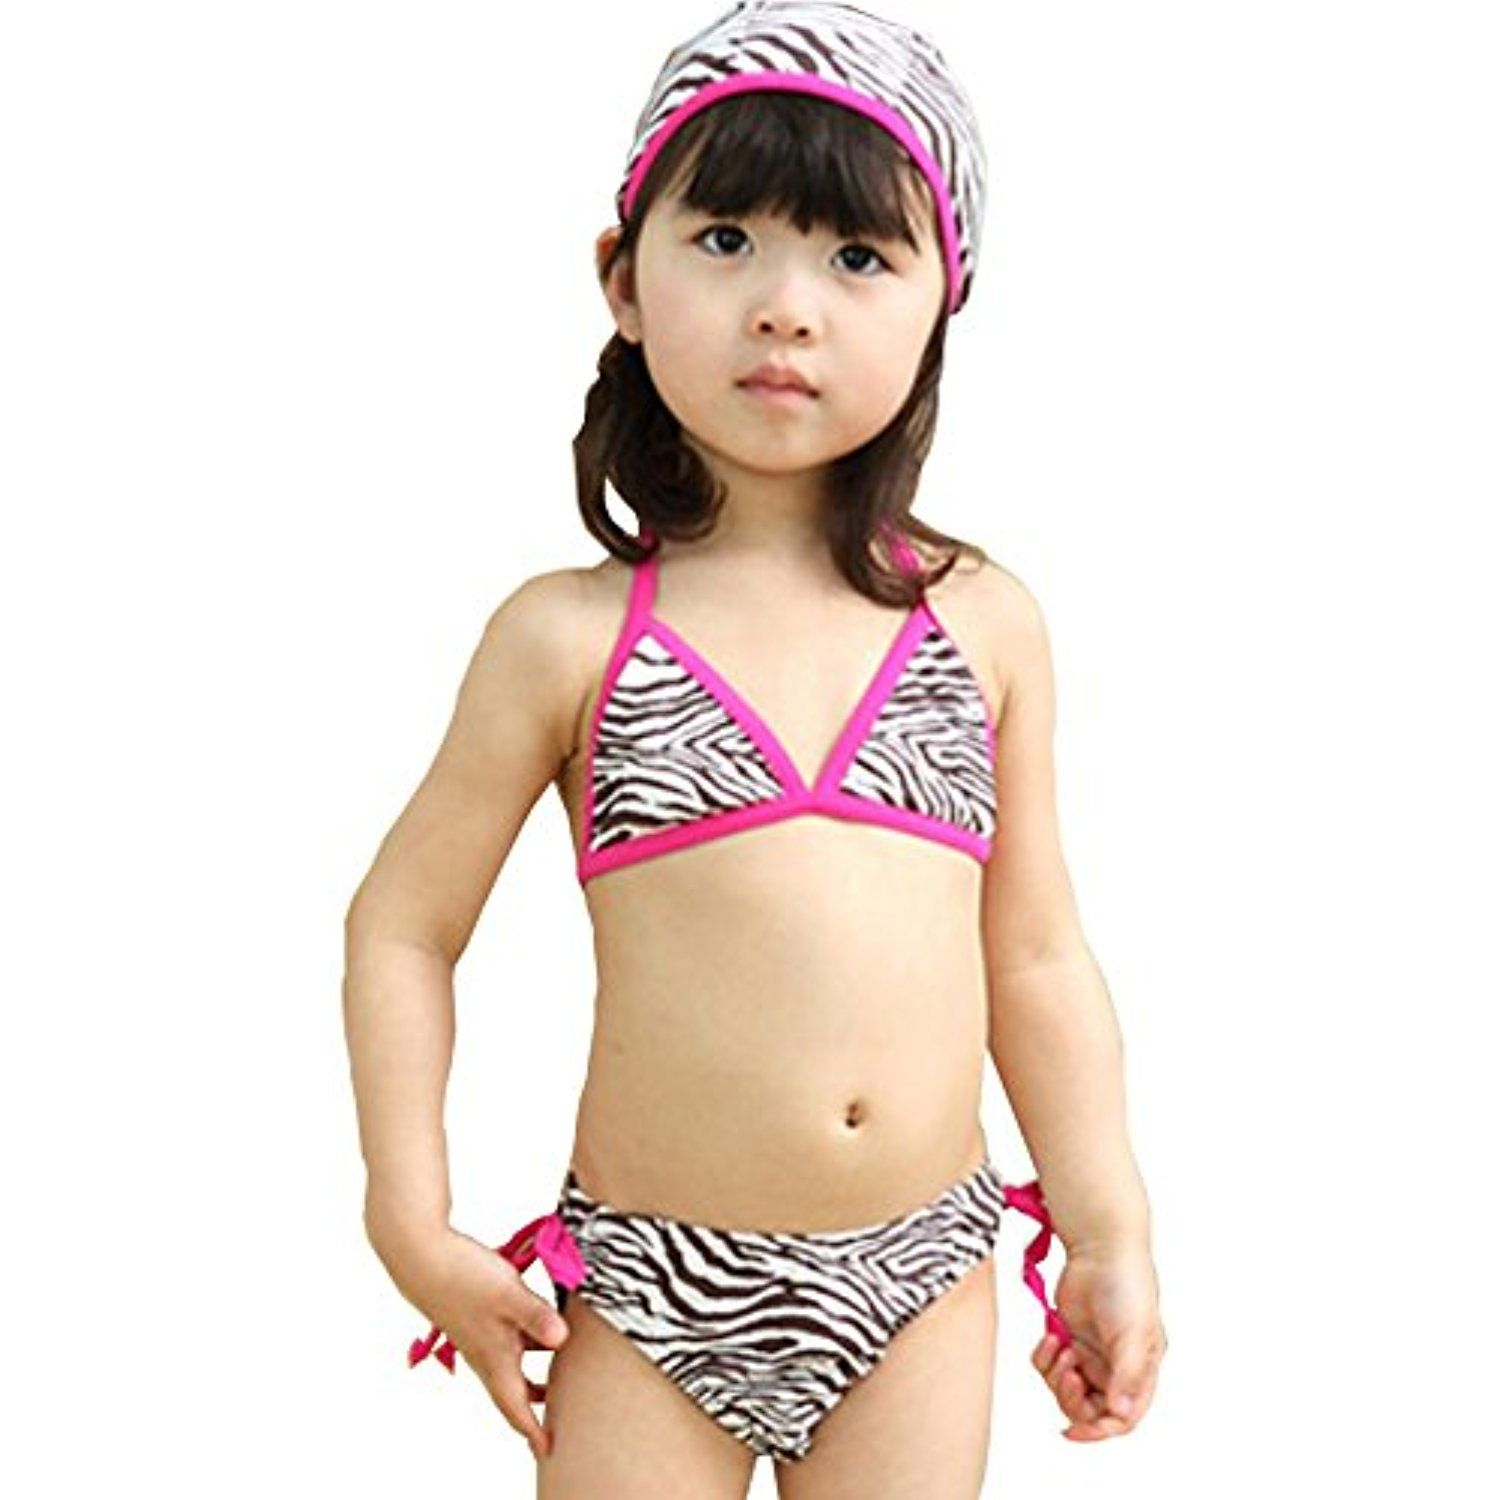 acc11a1c7161d Zebra Pattern Little Girls Swimsuit Kids Two-pieces Bikini Swimwear 5T Rose  ** Click image for more details. (This is an affiliate link) #Swimwear